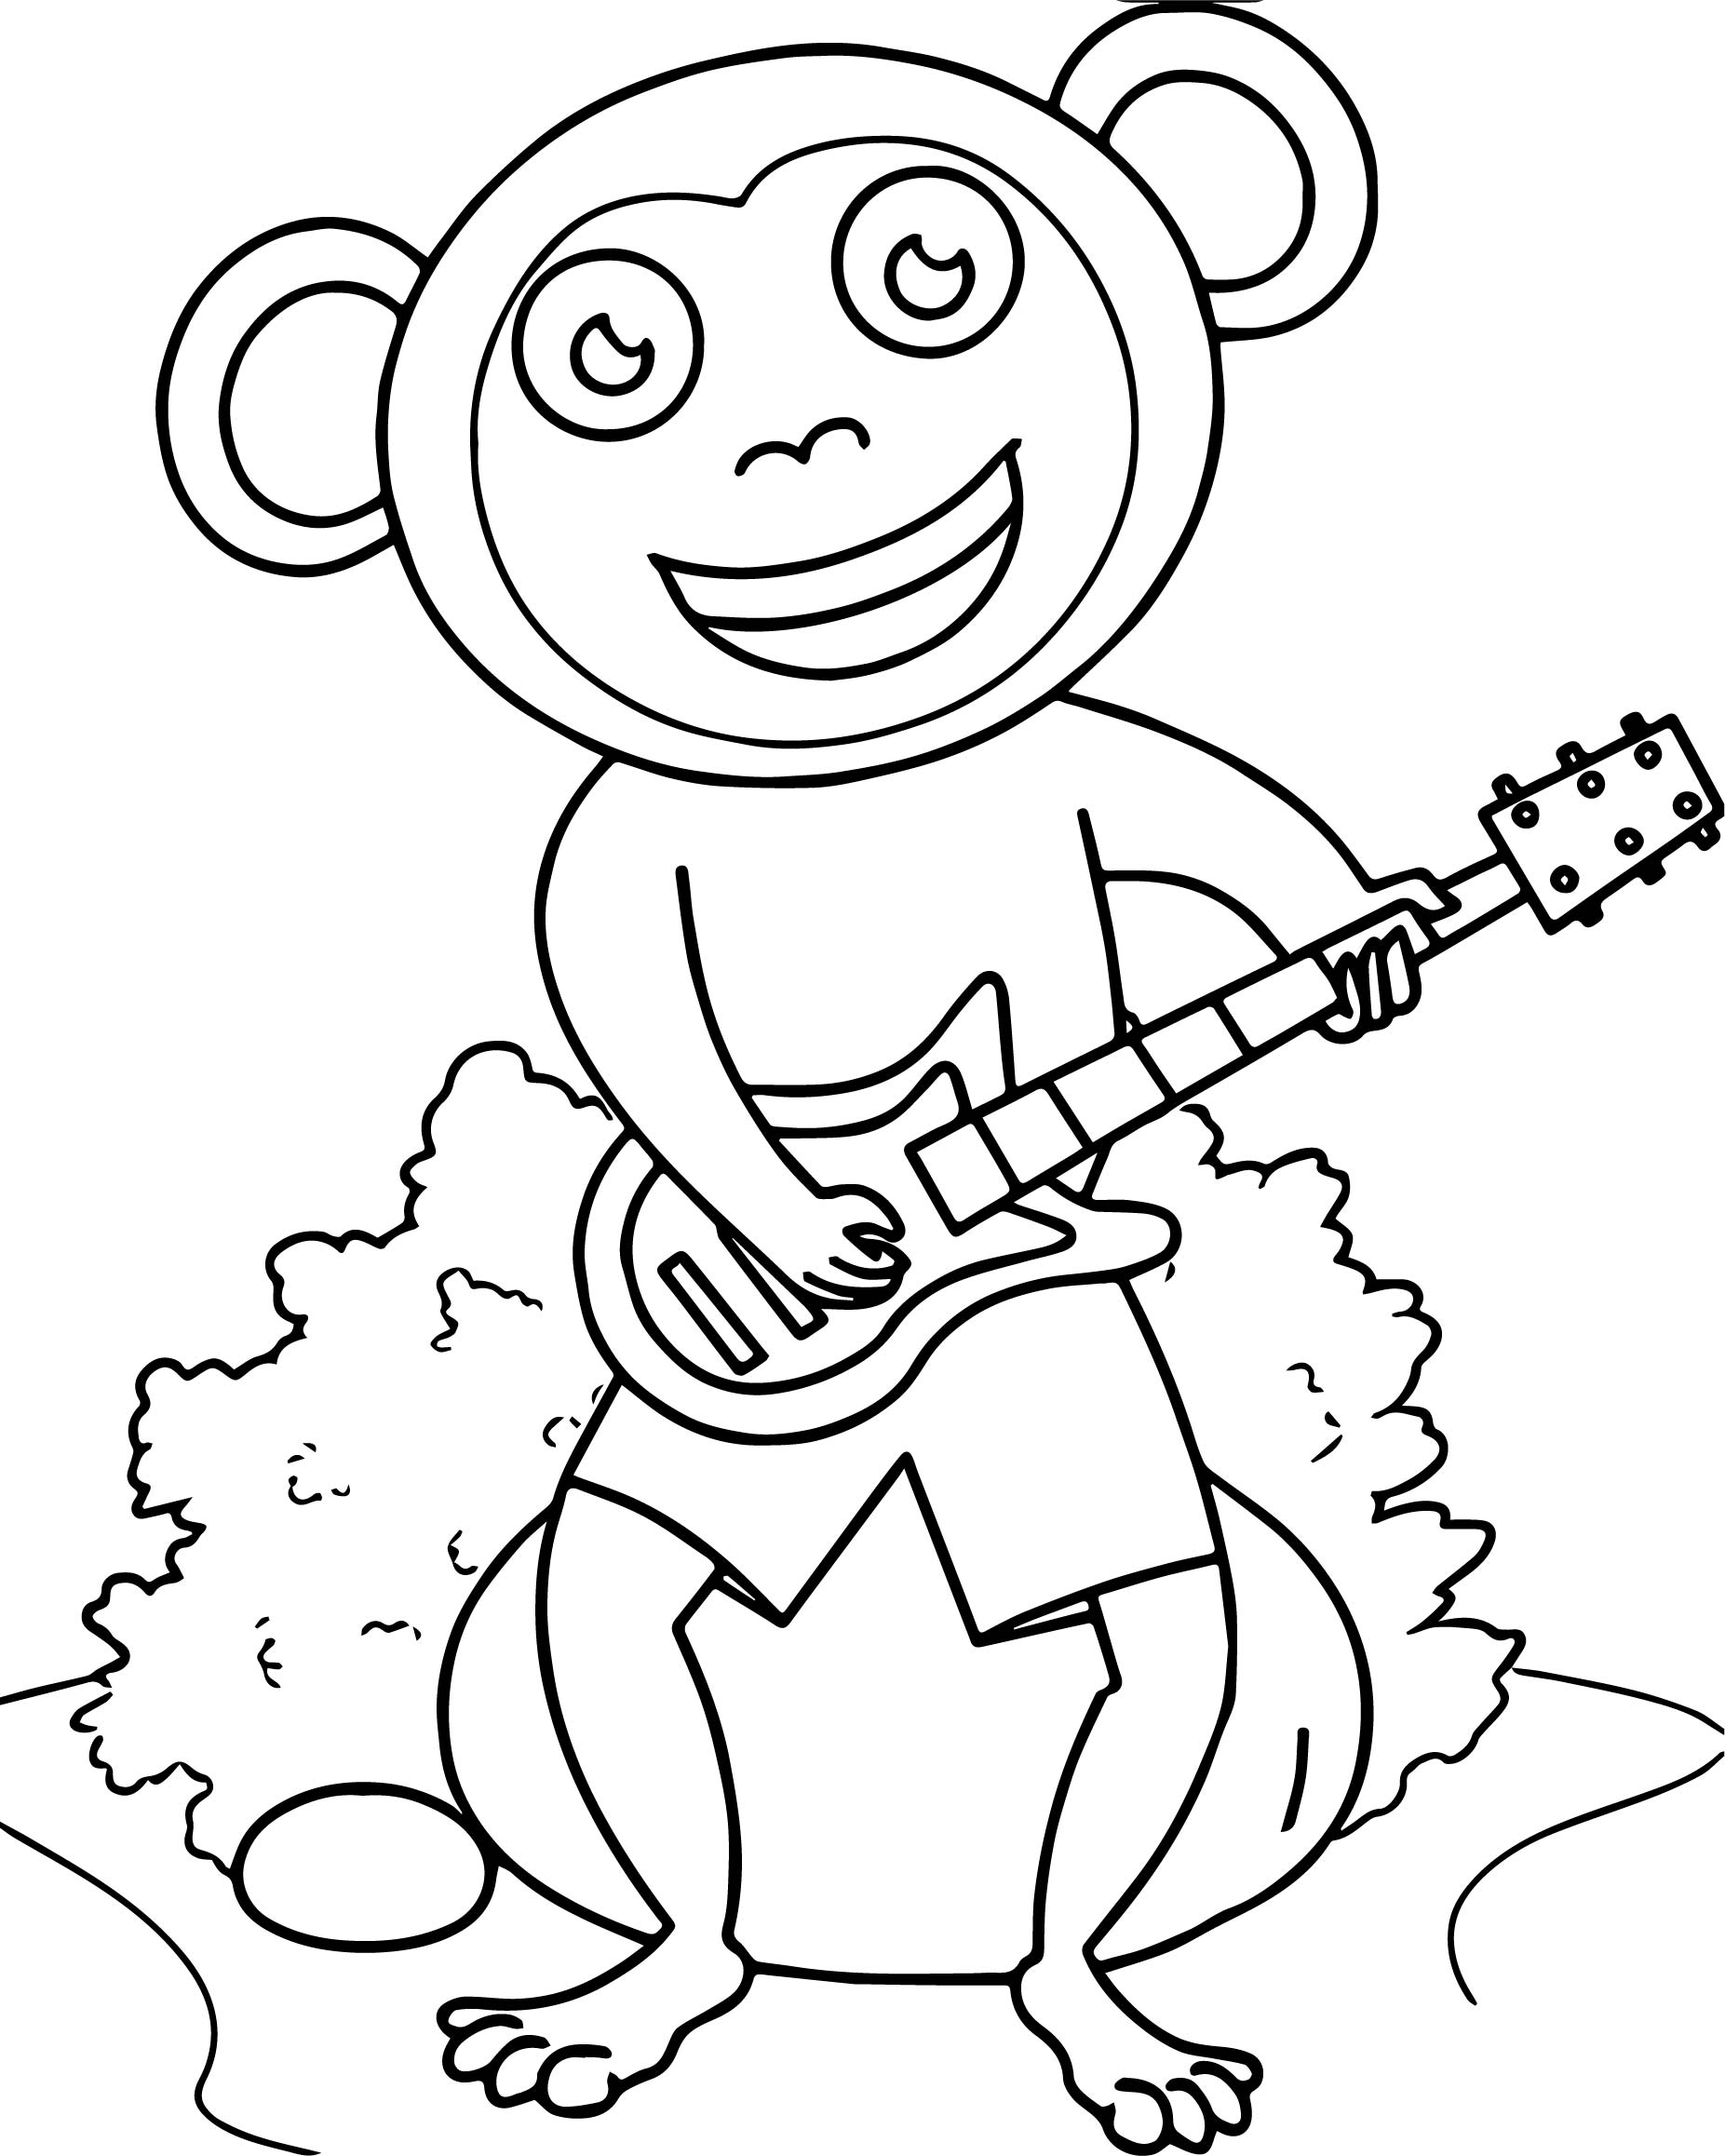 Monkey Sitting On Rock Playing Guitar Coloring Page